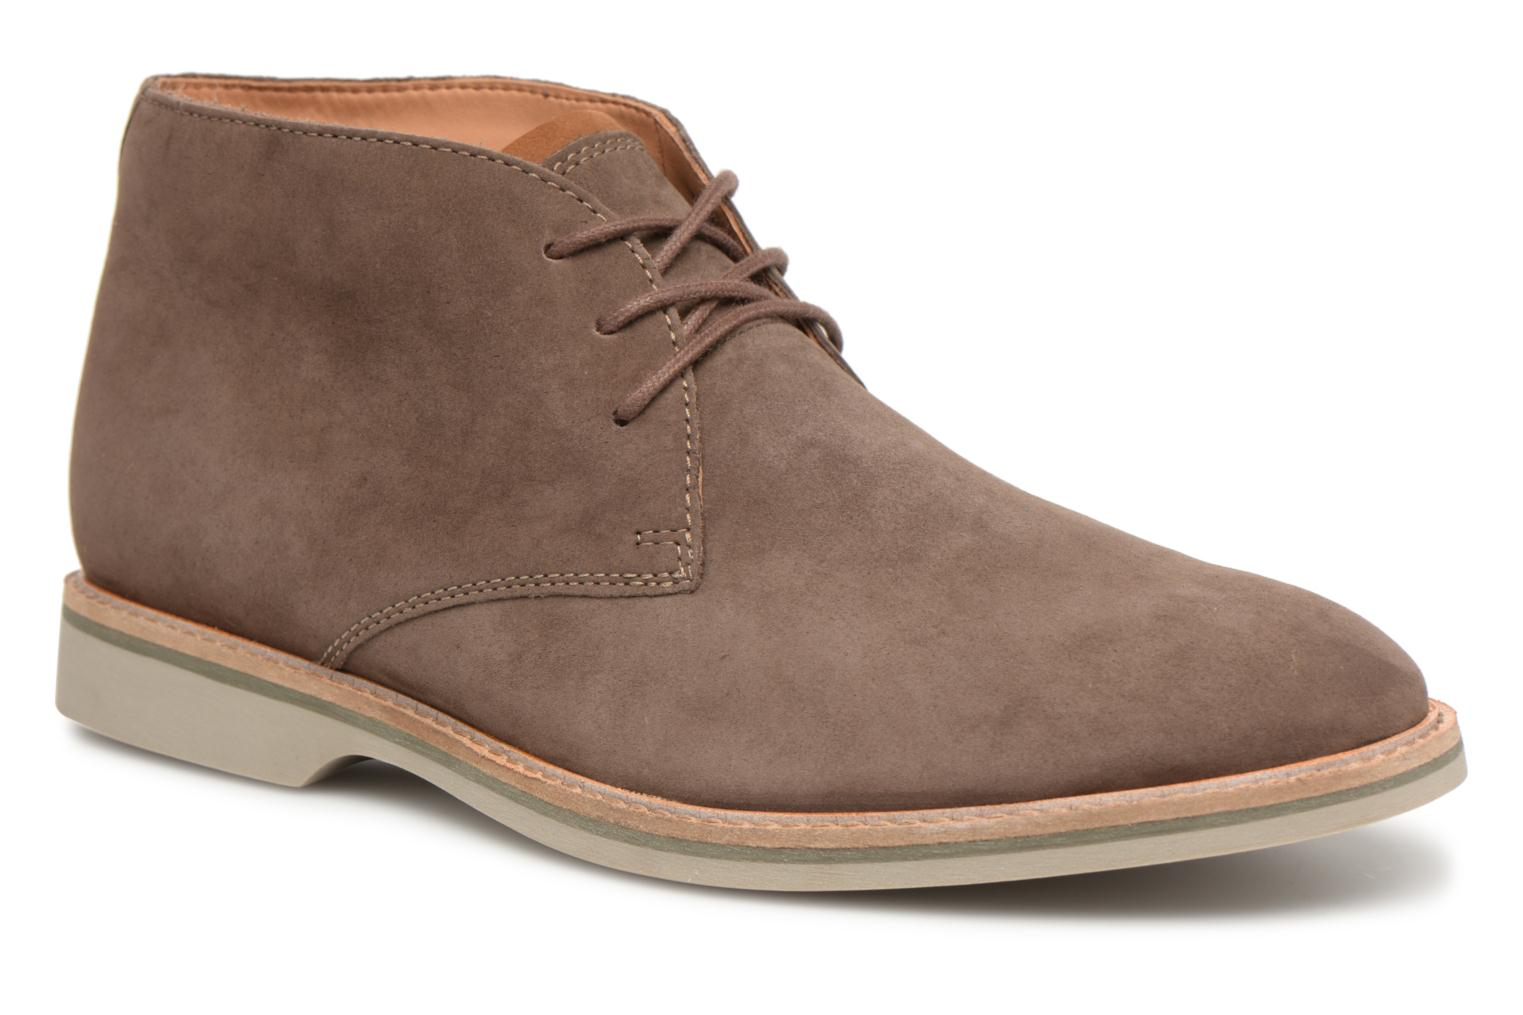 Marques Chaussure homme Clarks homme Atticus Limit Navy nubuck